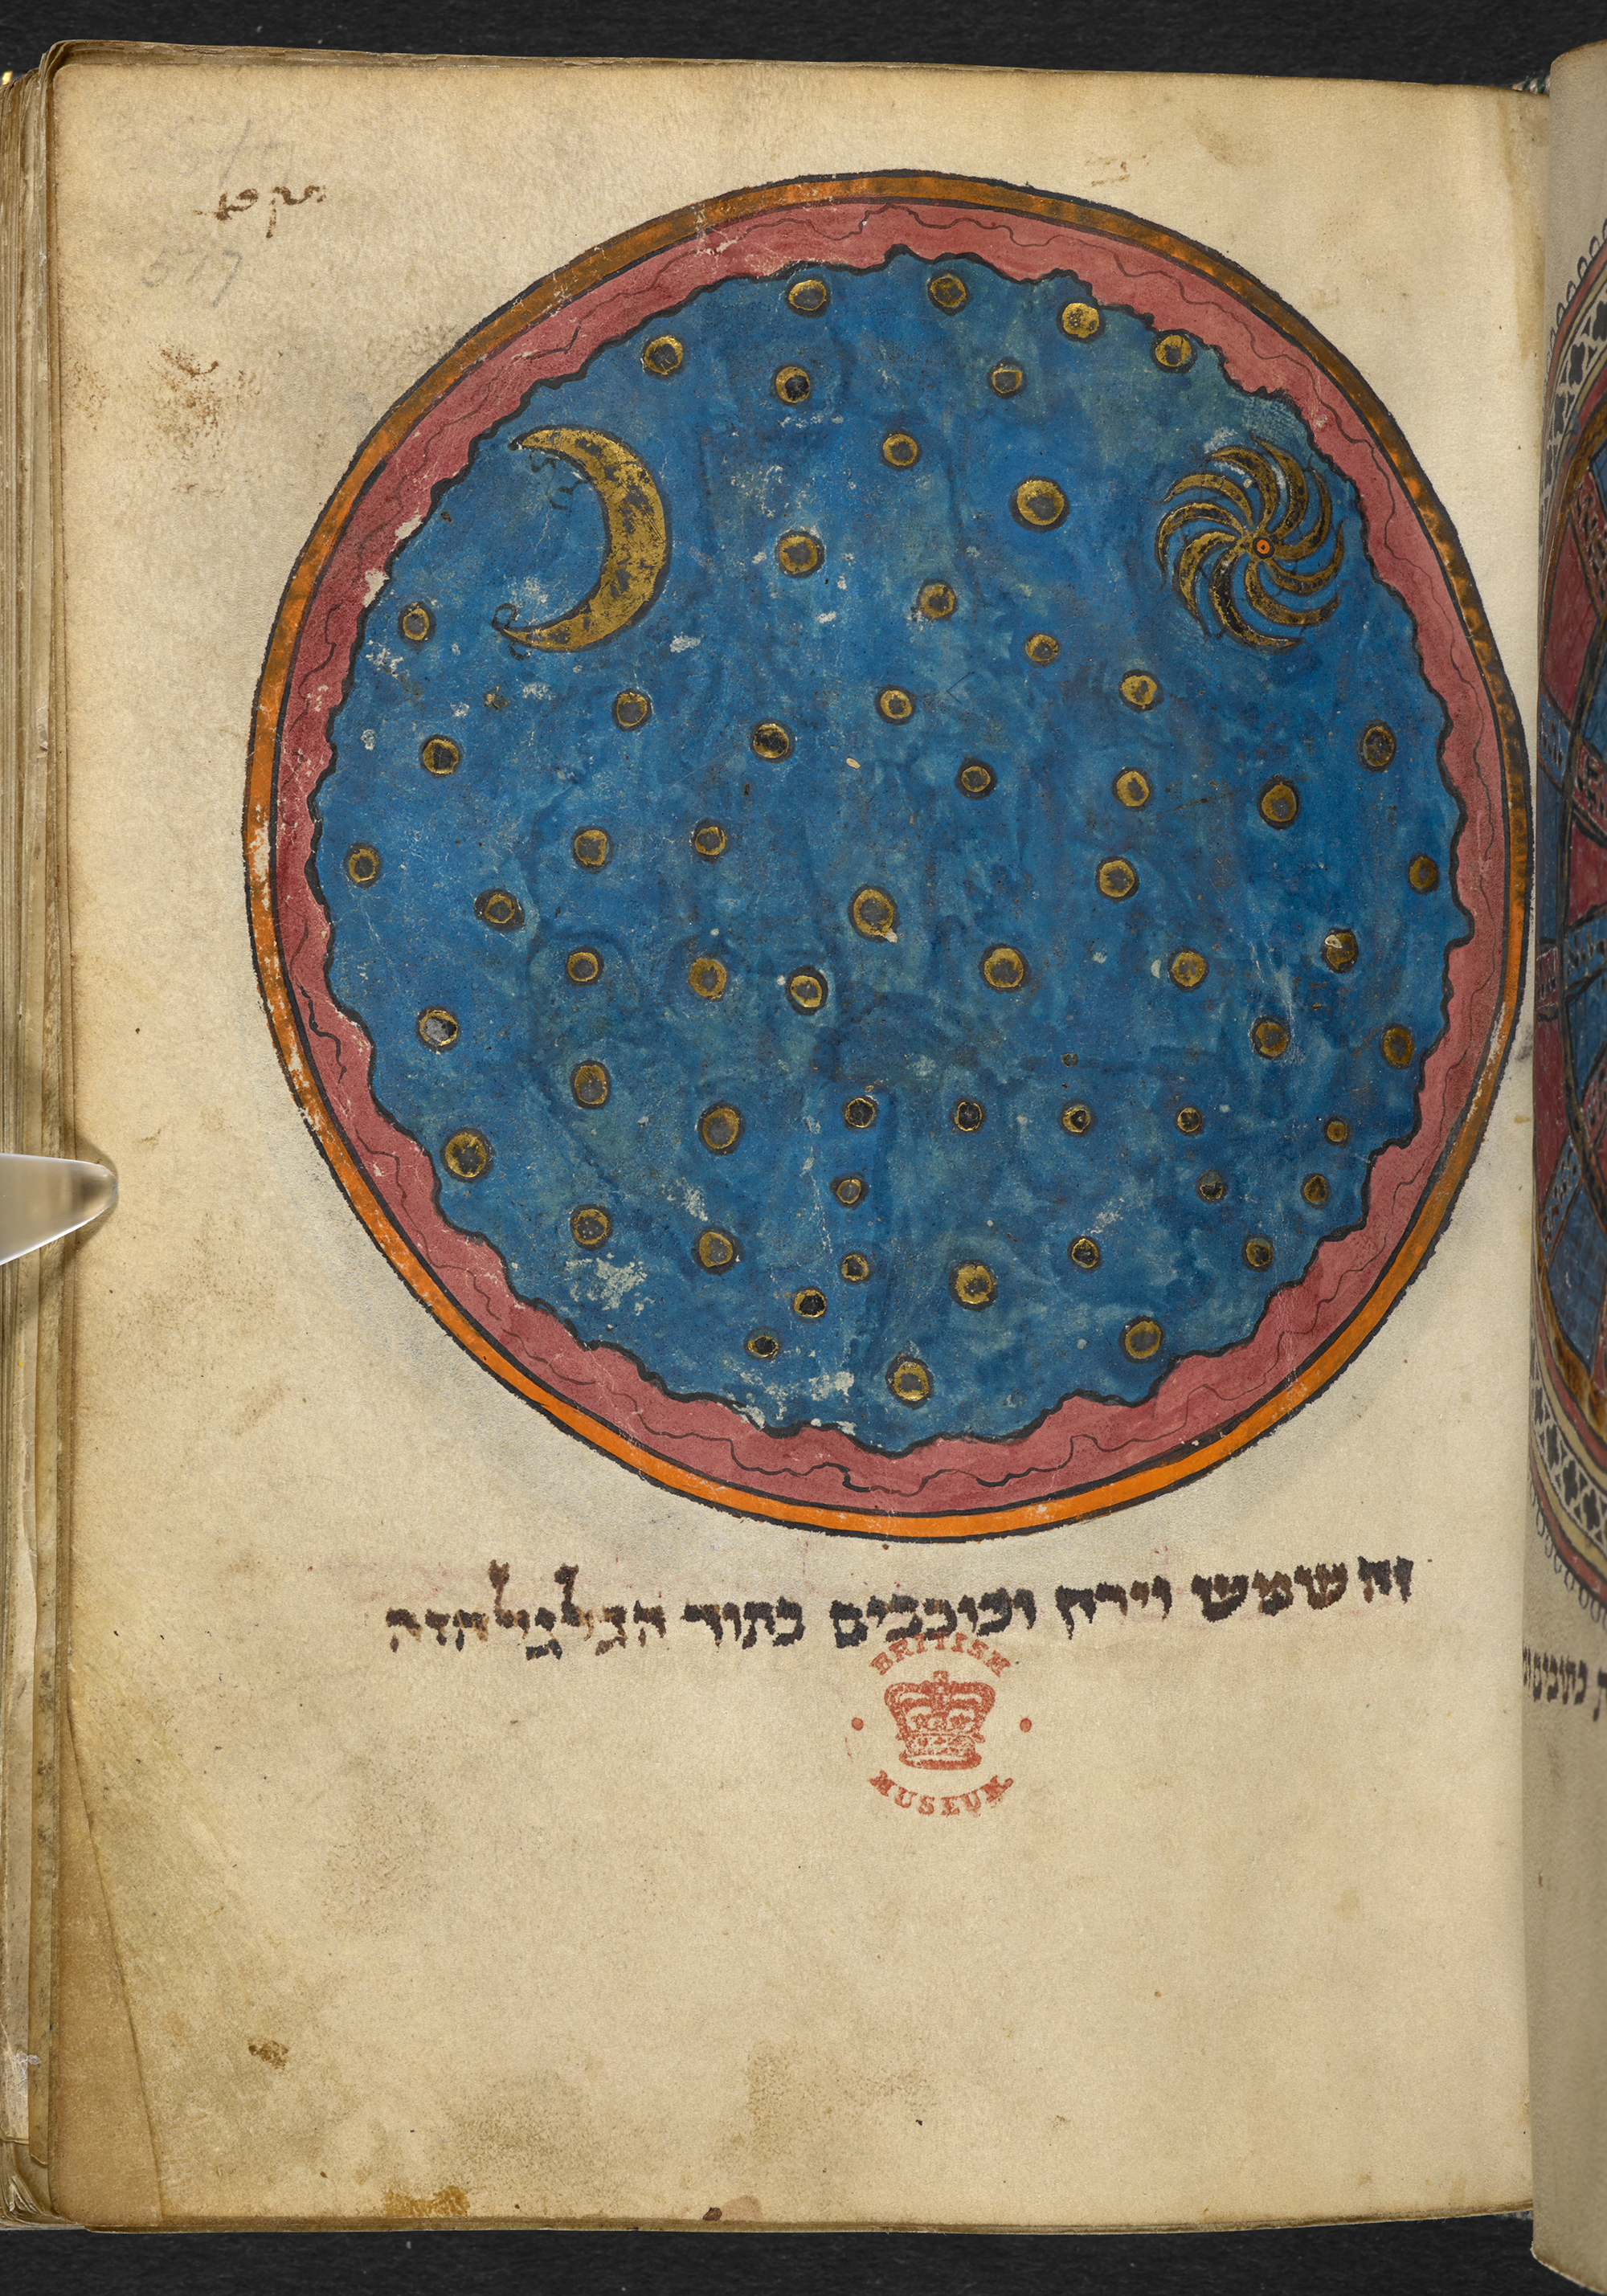 The sun, moon and stars, Miscellany of biblical and other texts ('The Northern French Miscellany'), Add MS 11639, Hebrew Manuscripts Digitisation Project, British Library